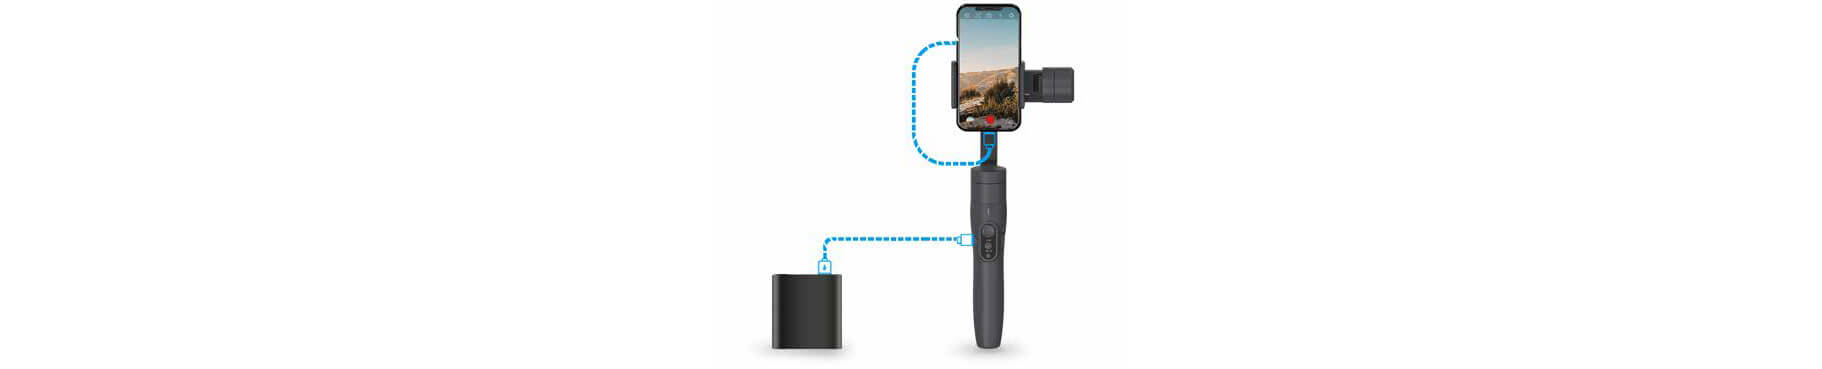 VIMBLE 2 stabilizer for smartphone